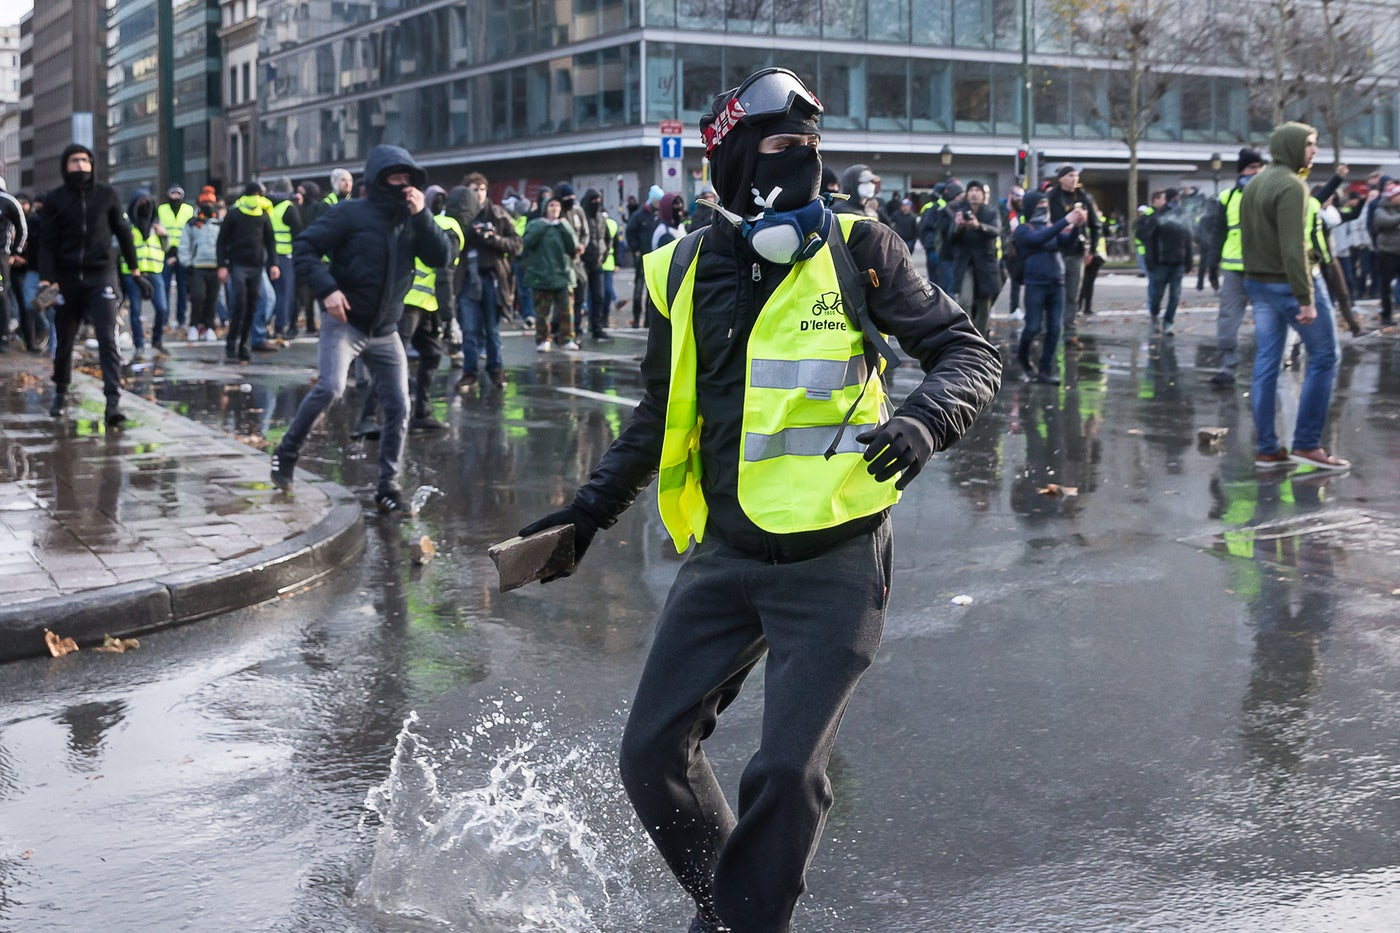 France's Yellow Vest Protesters Want to Fight Climate Change - The New Republic